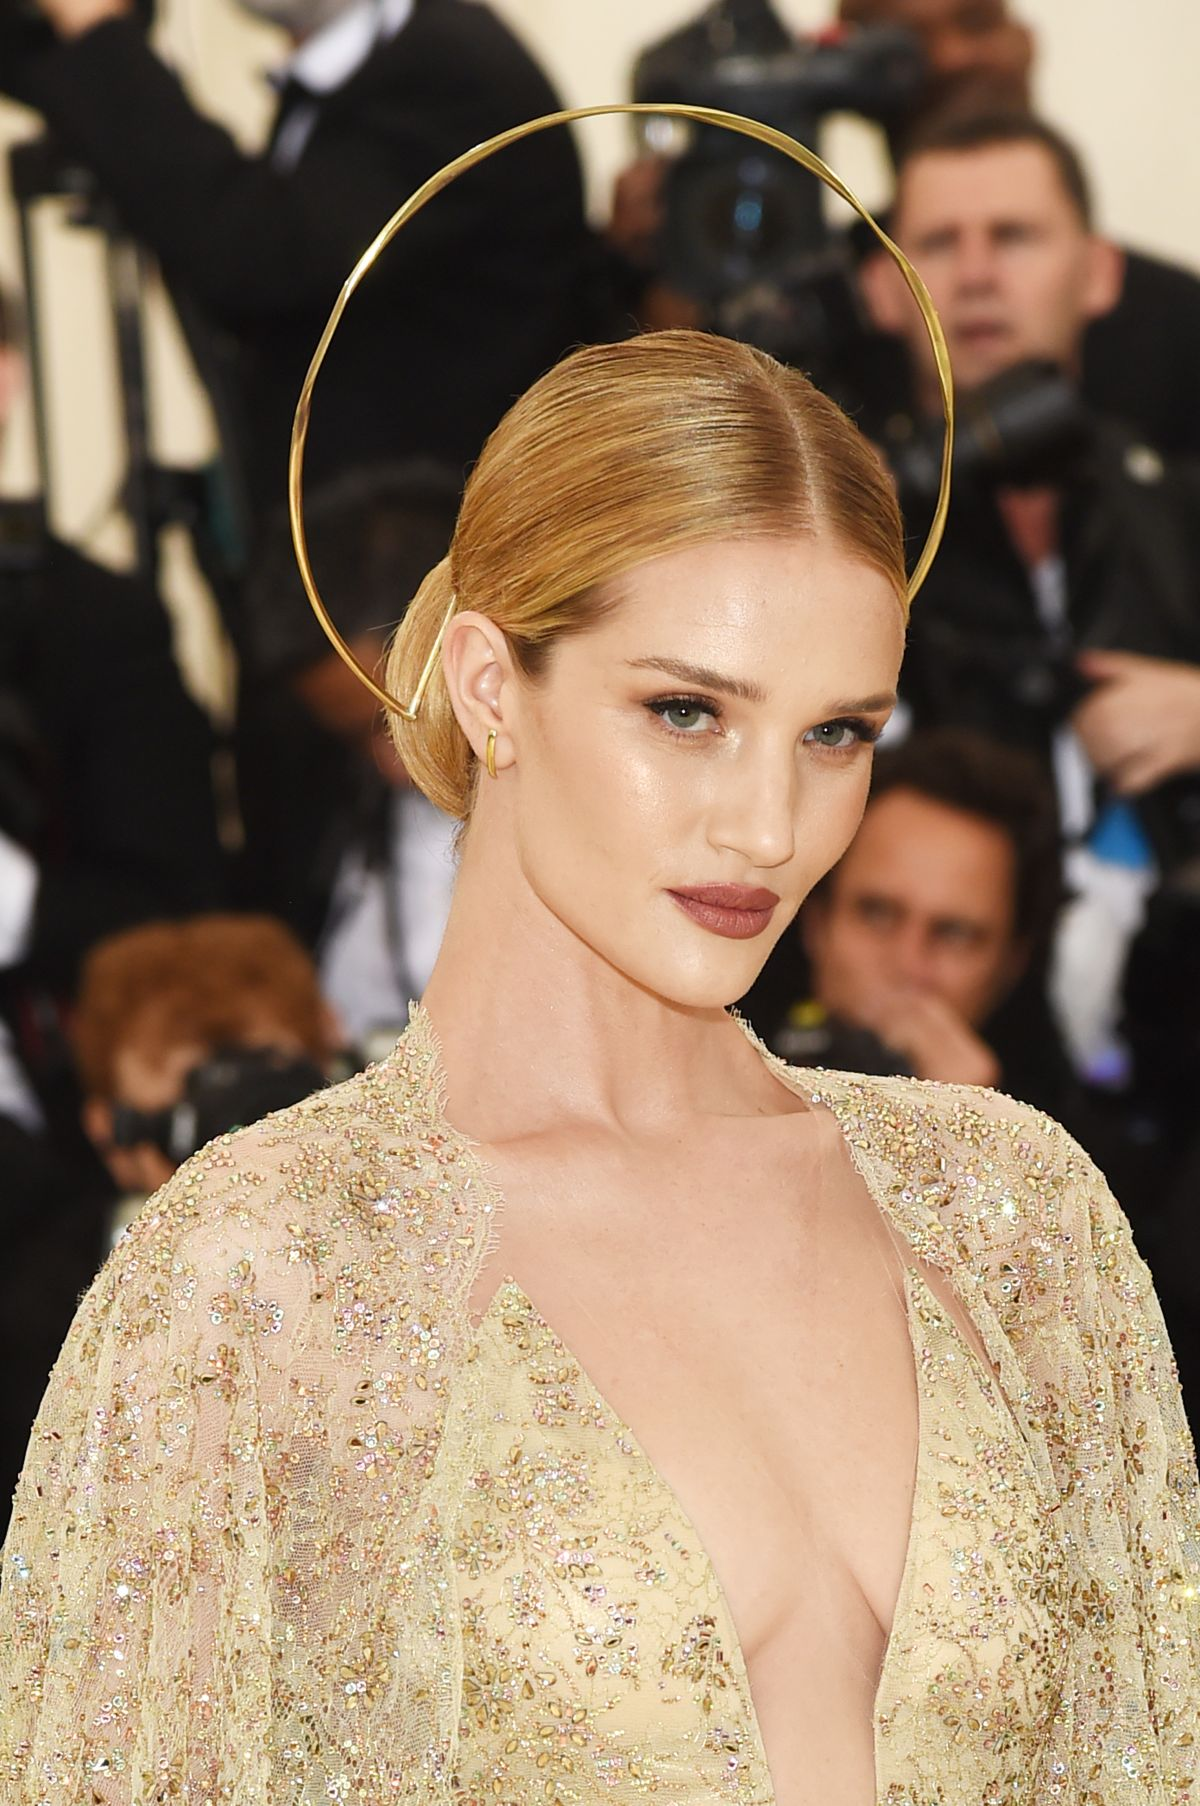 rosie-huntington-whiteley-at-met-gala-2018-in-new-york-05-07-2018-15.jpg